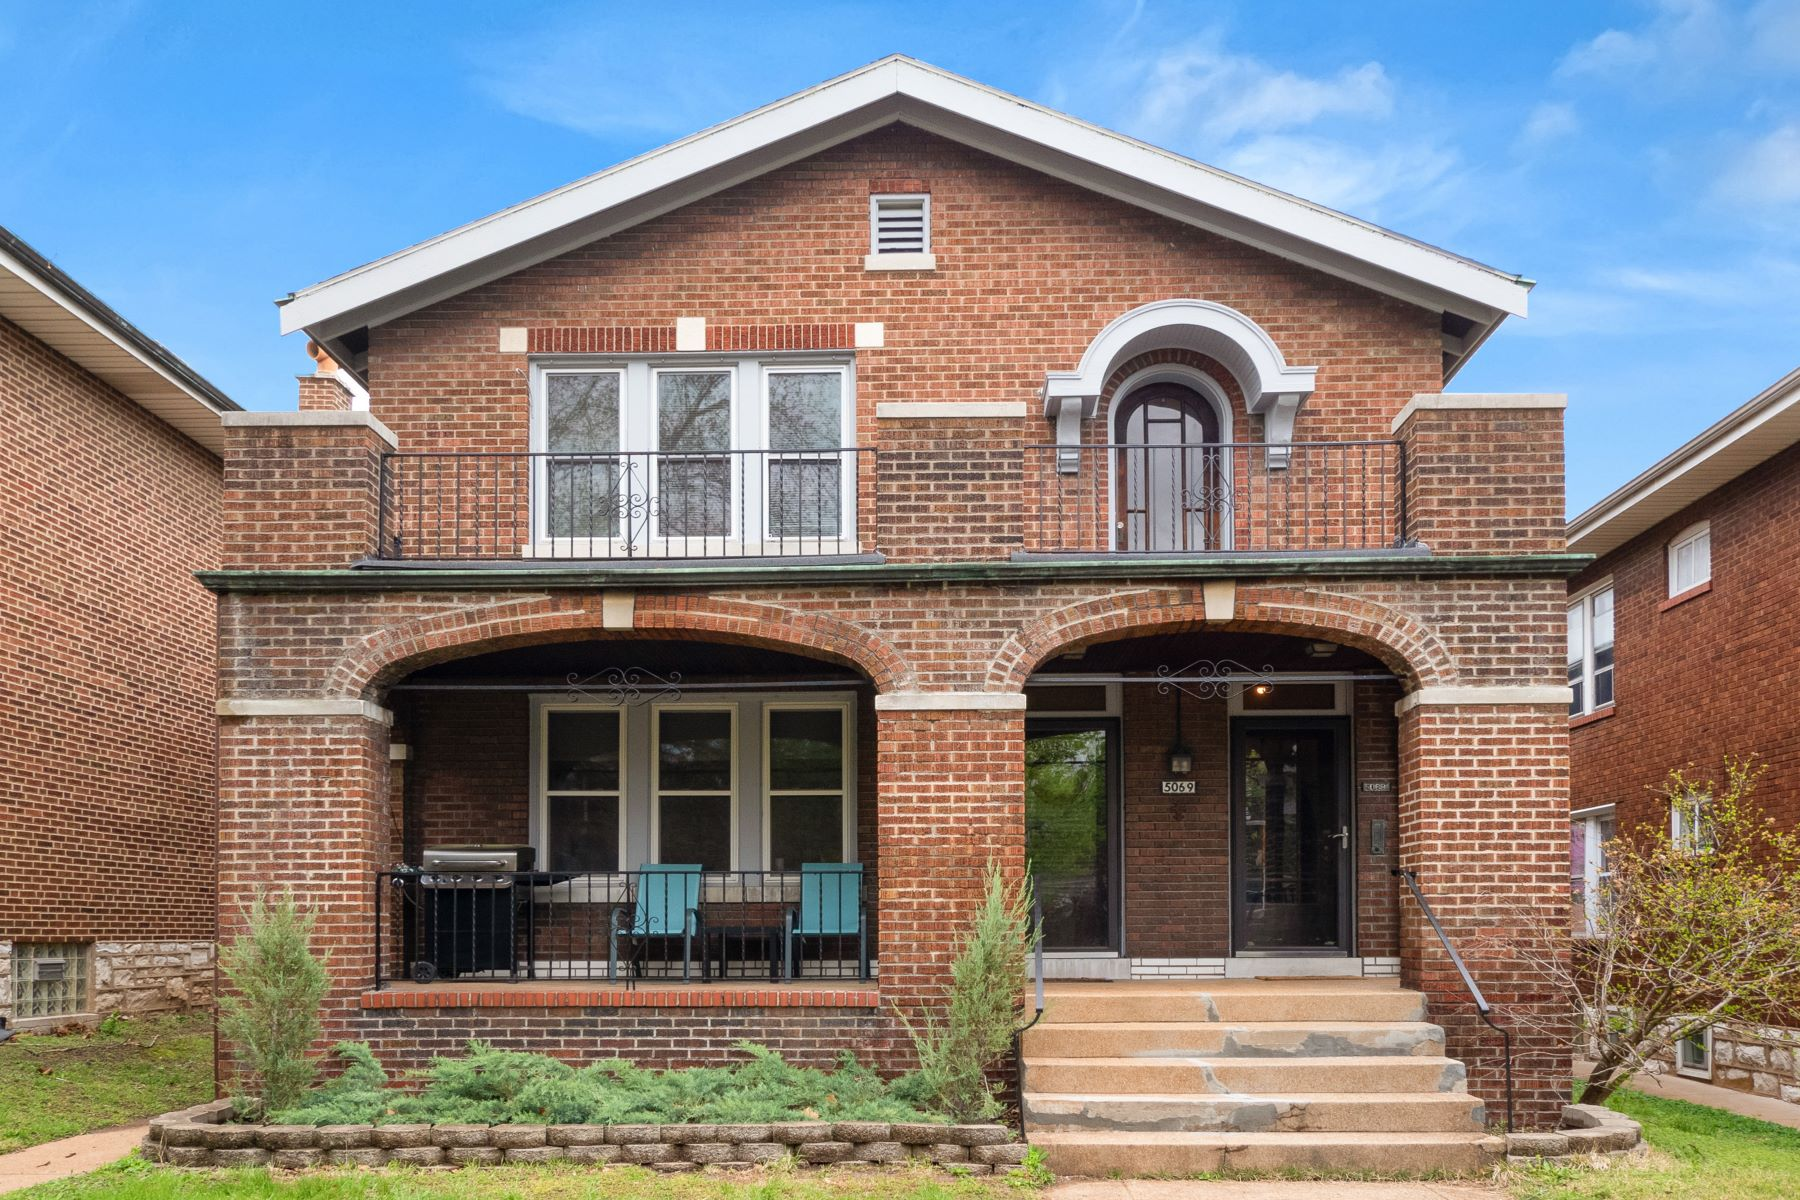 Multi-Family Homes for Sale at Stylish and Retro Chic Duplex 5069 Tholozan Avenue St. Louis, Missouri 63109 United States